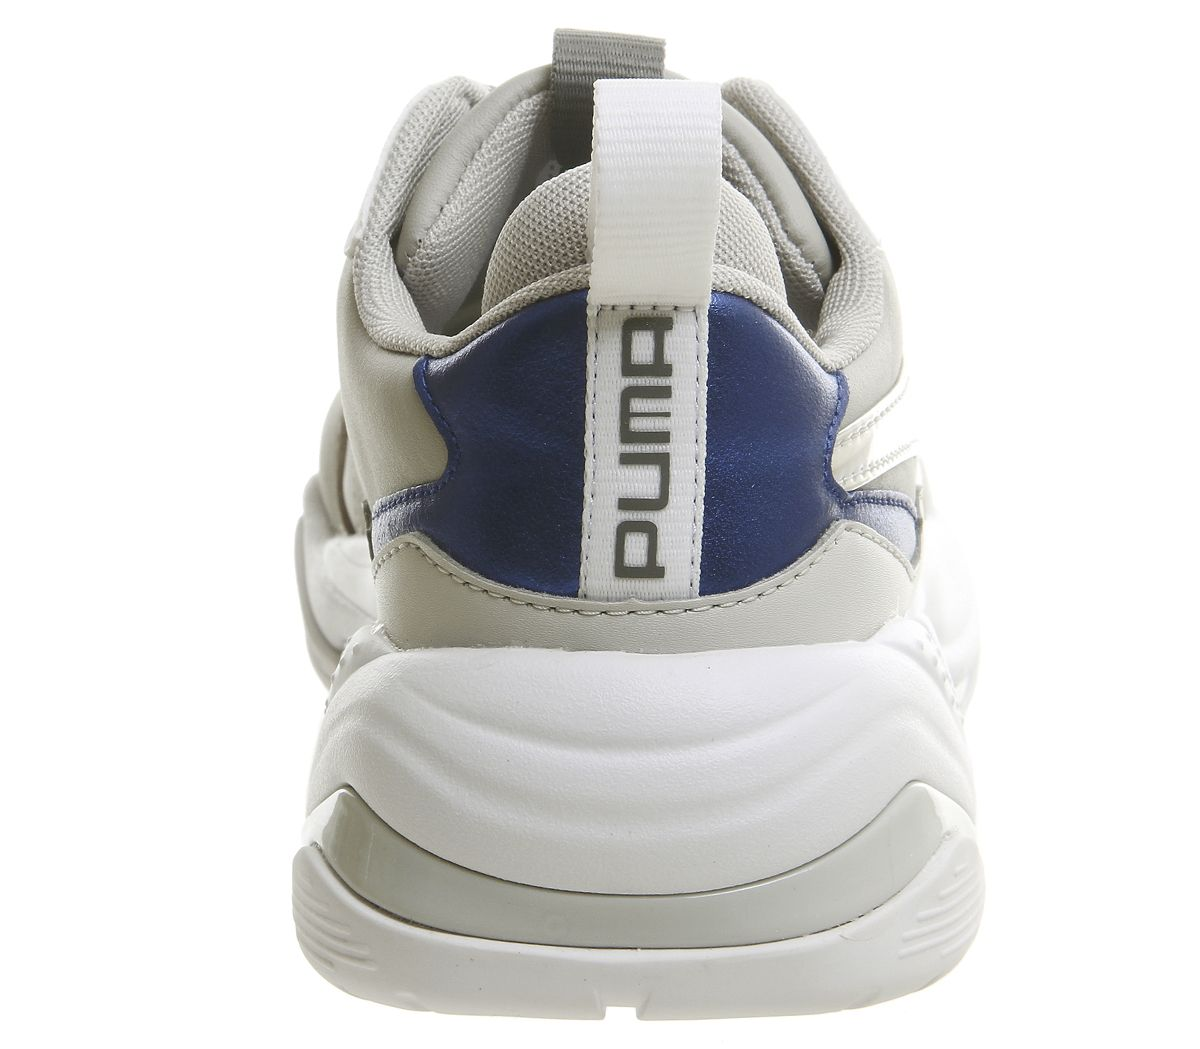 78151d32be39 Puma Thunder Electric Trainers Puma White Grey Violet Puma - Hers ...